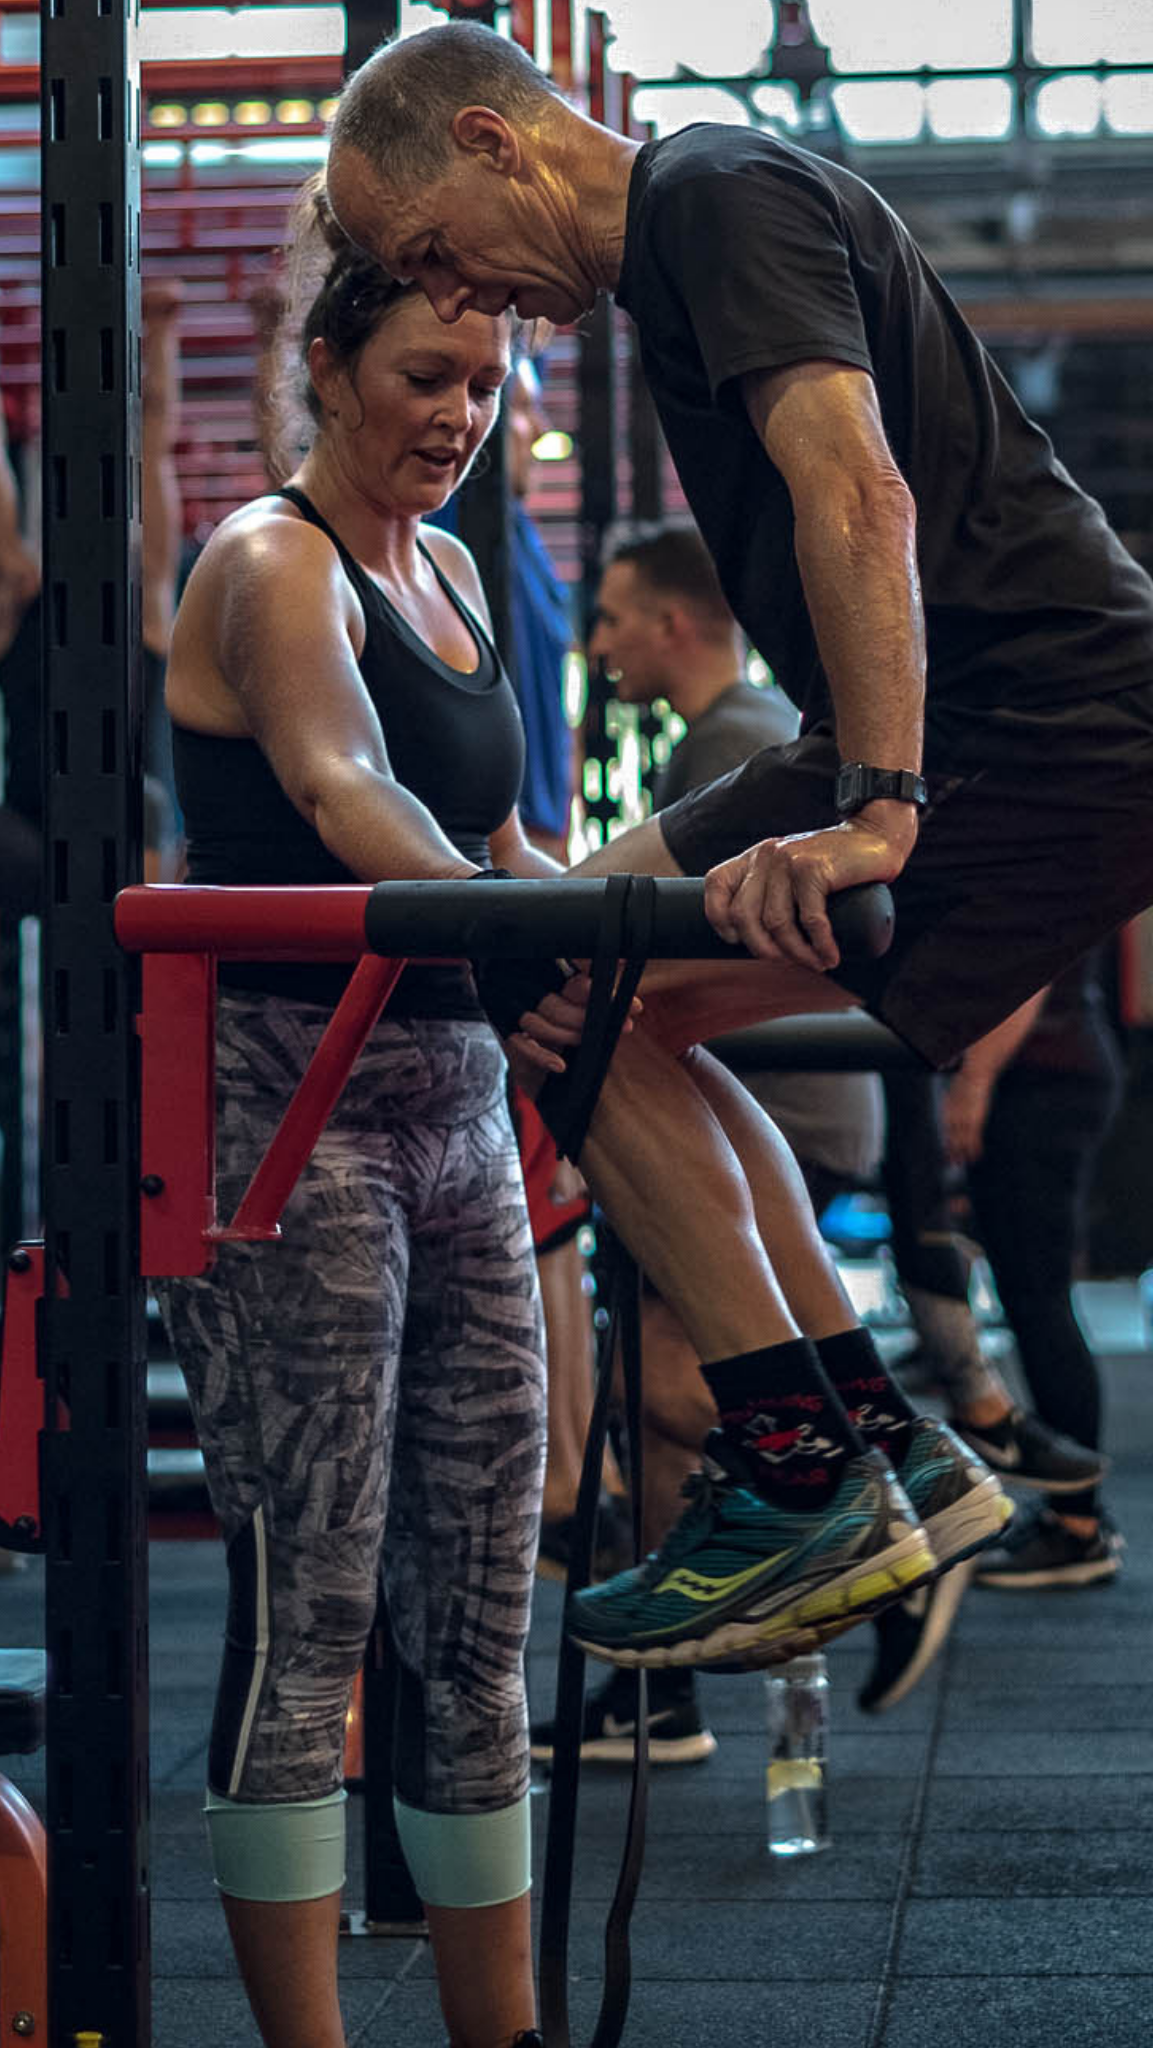 Dips, Deadlifts, Squats and Sleds - If you're looking to build Strength we've got you covered, In this class we'll help you learn how to lift that little bit heavier to help you Get Strong and Powerful and injury free.